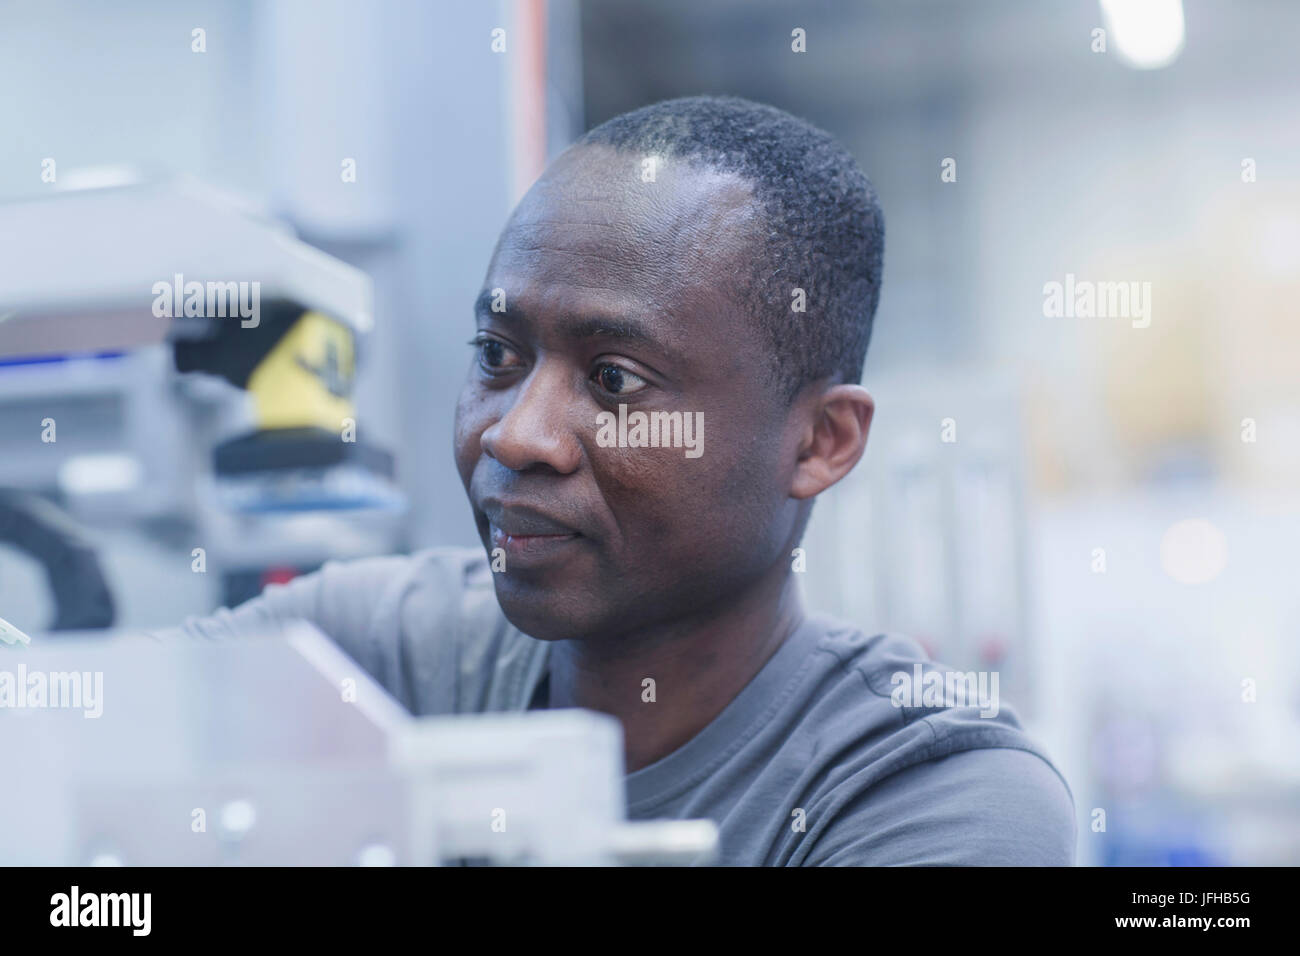 Close-up of worker repairing machine at engineering plant - Stock Image